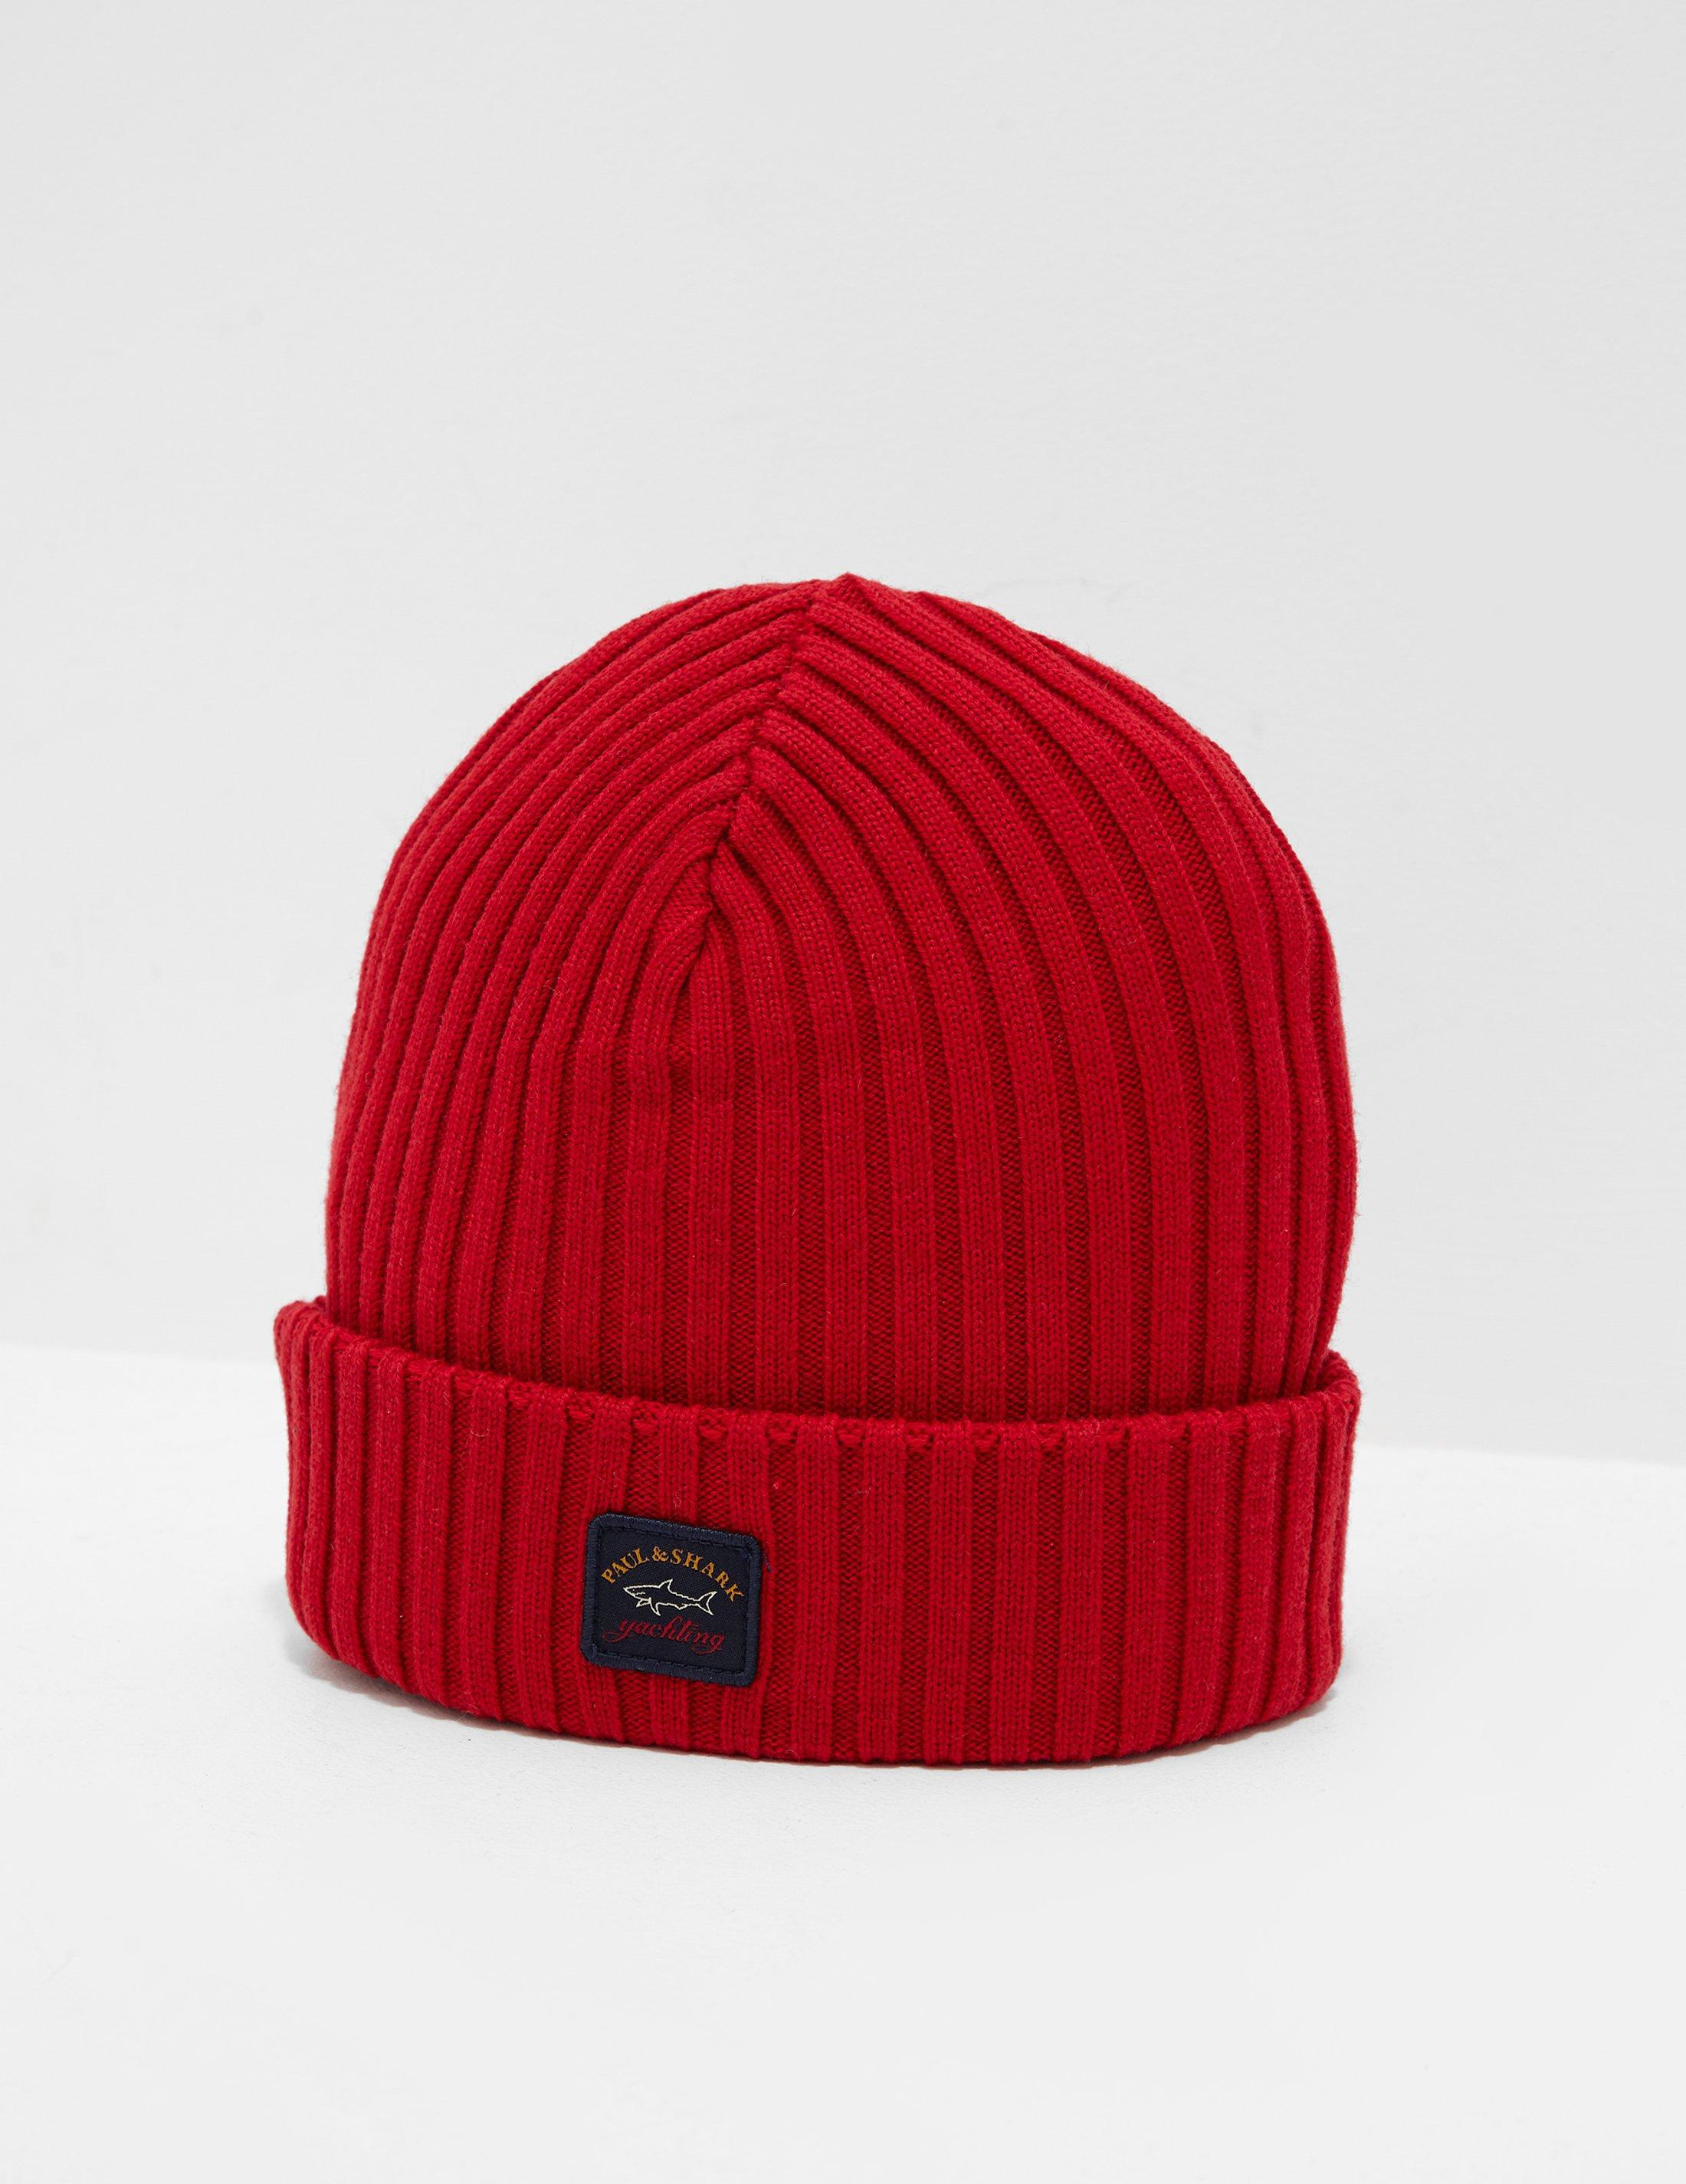 Paul   Shark Mens Patch Beanie Red in Red for Men - Lyst 8a7e46d8e32a